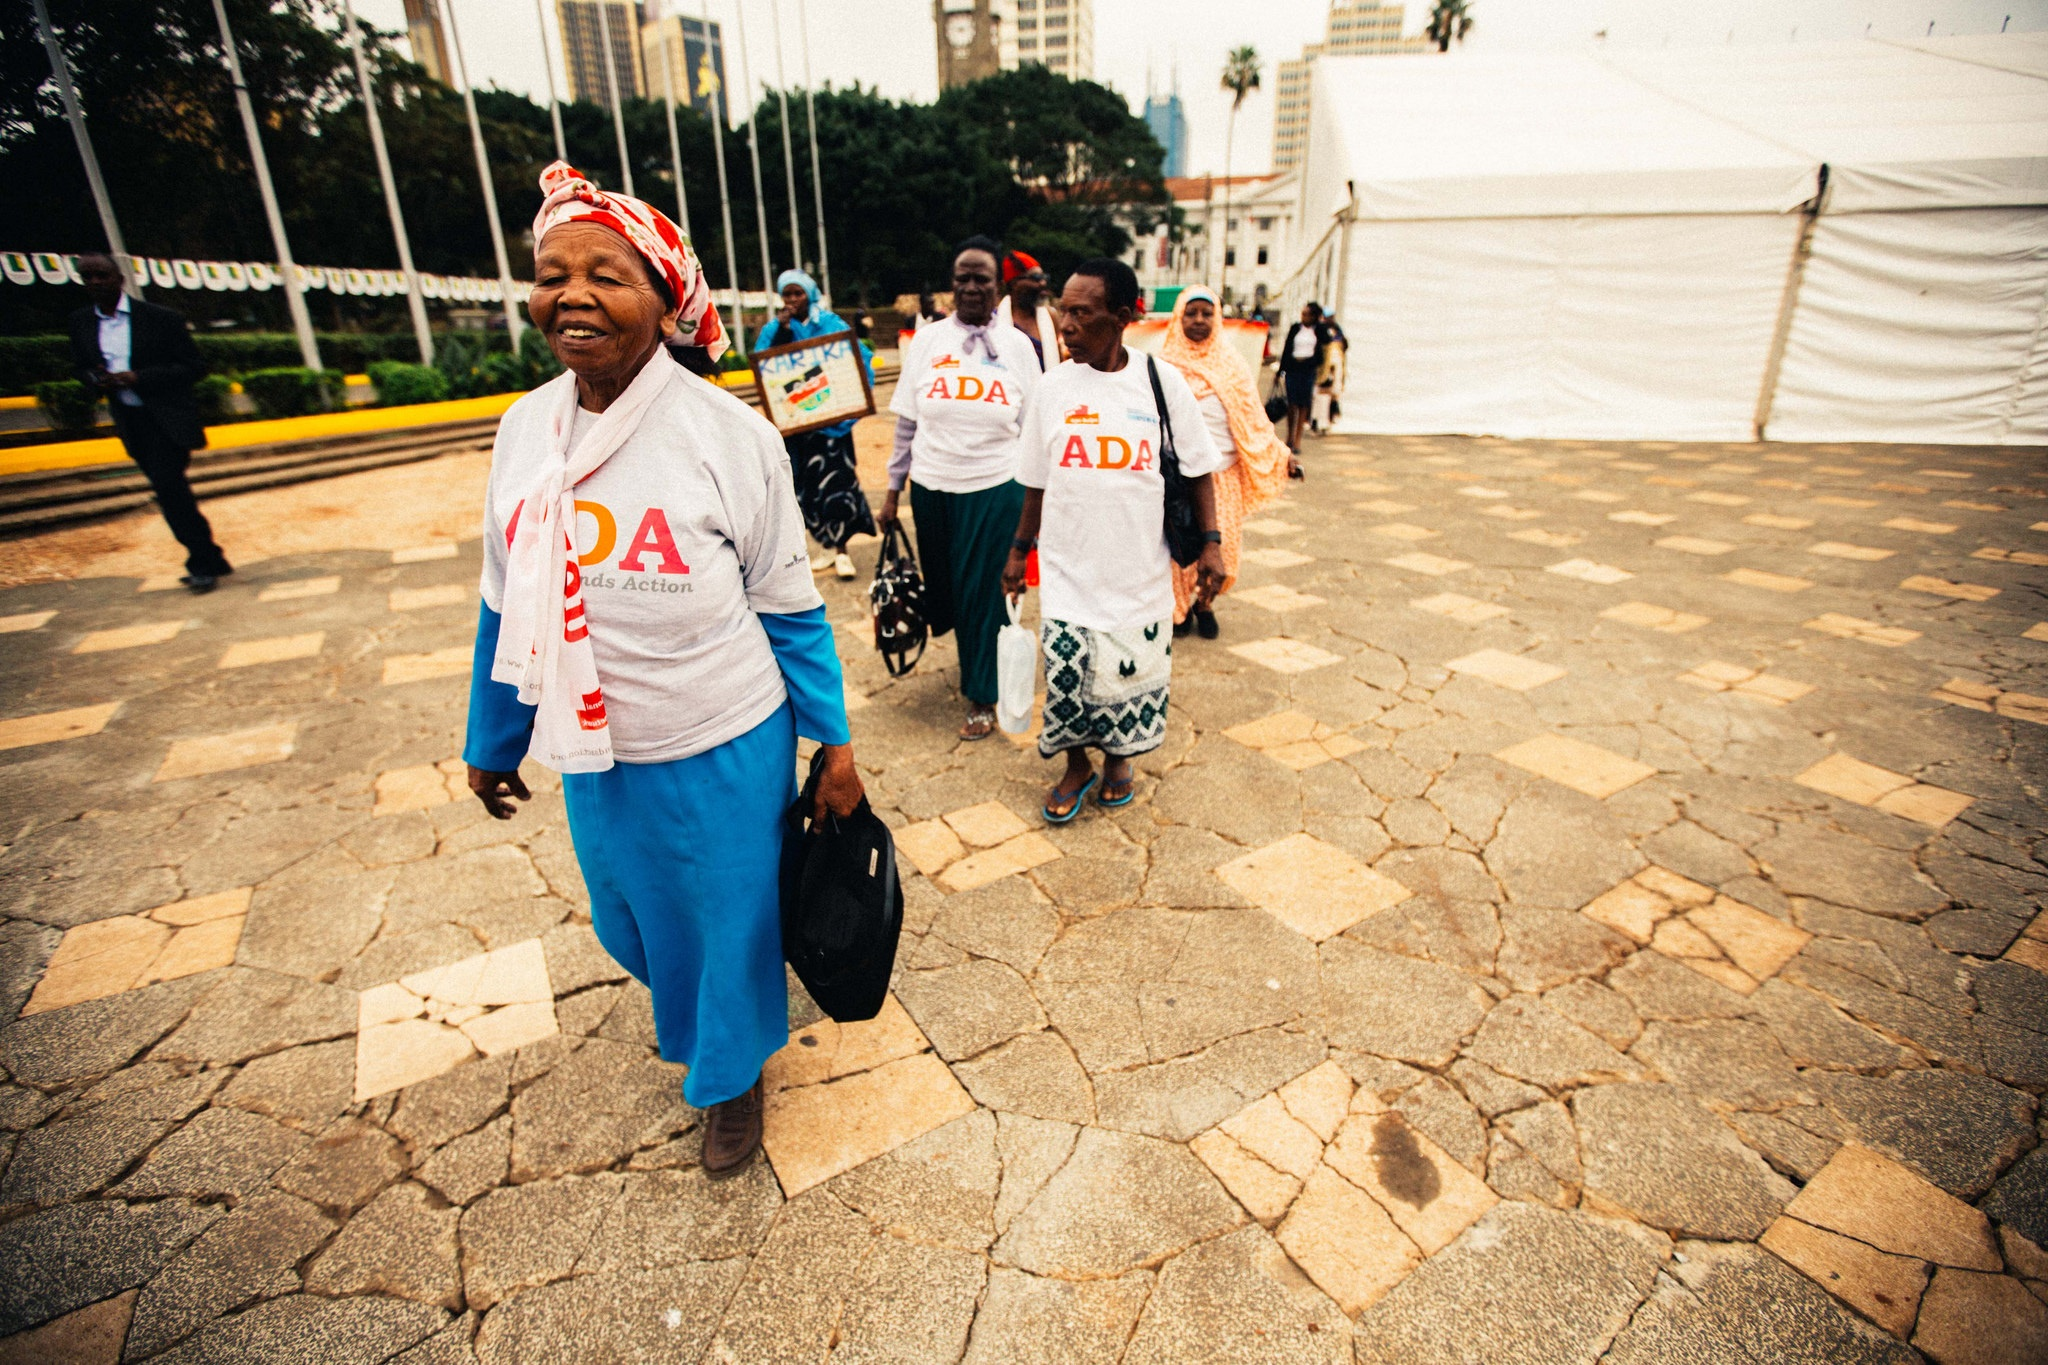 Esther Wamera and Rhoda Ngima Kariuki taking part in Age Demands Action for Rights 2014 (c) Pedro Ramirez HelpAge International